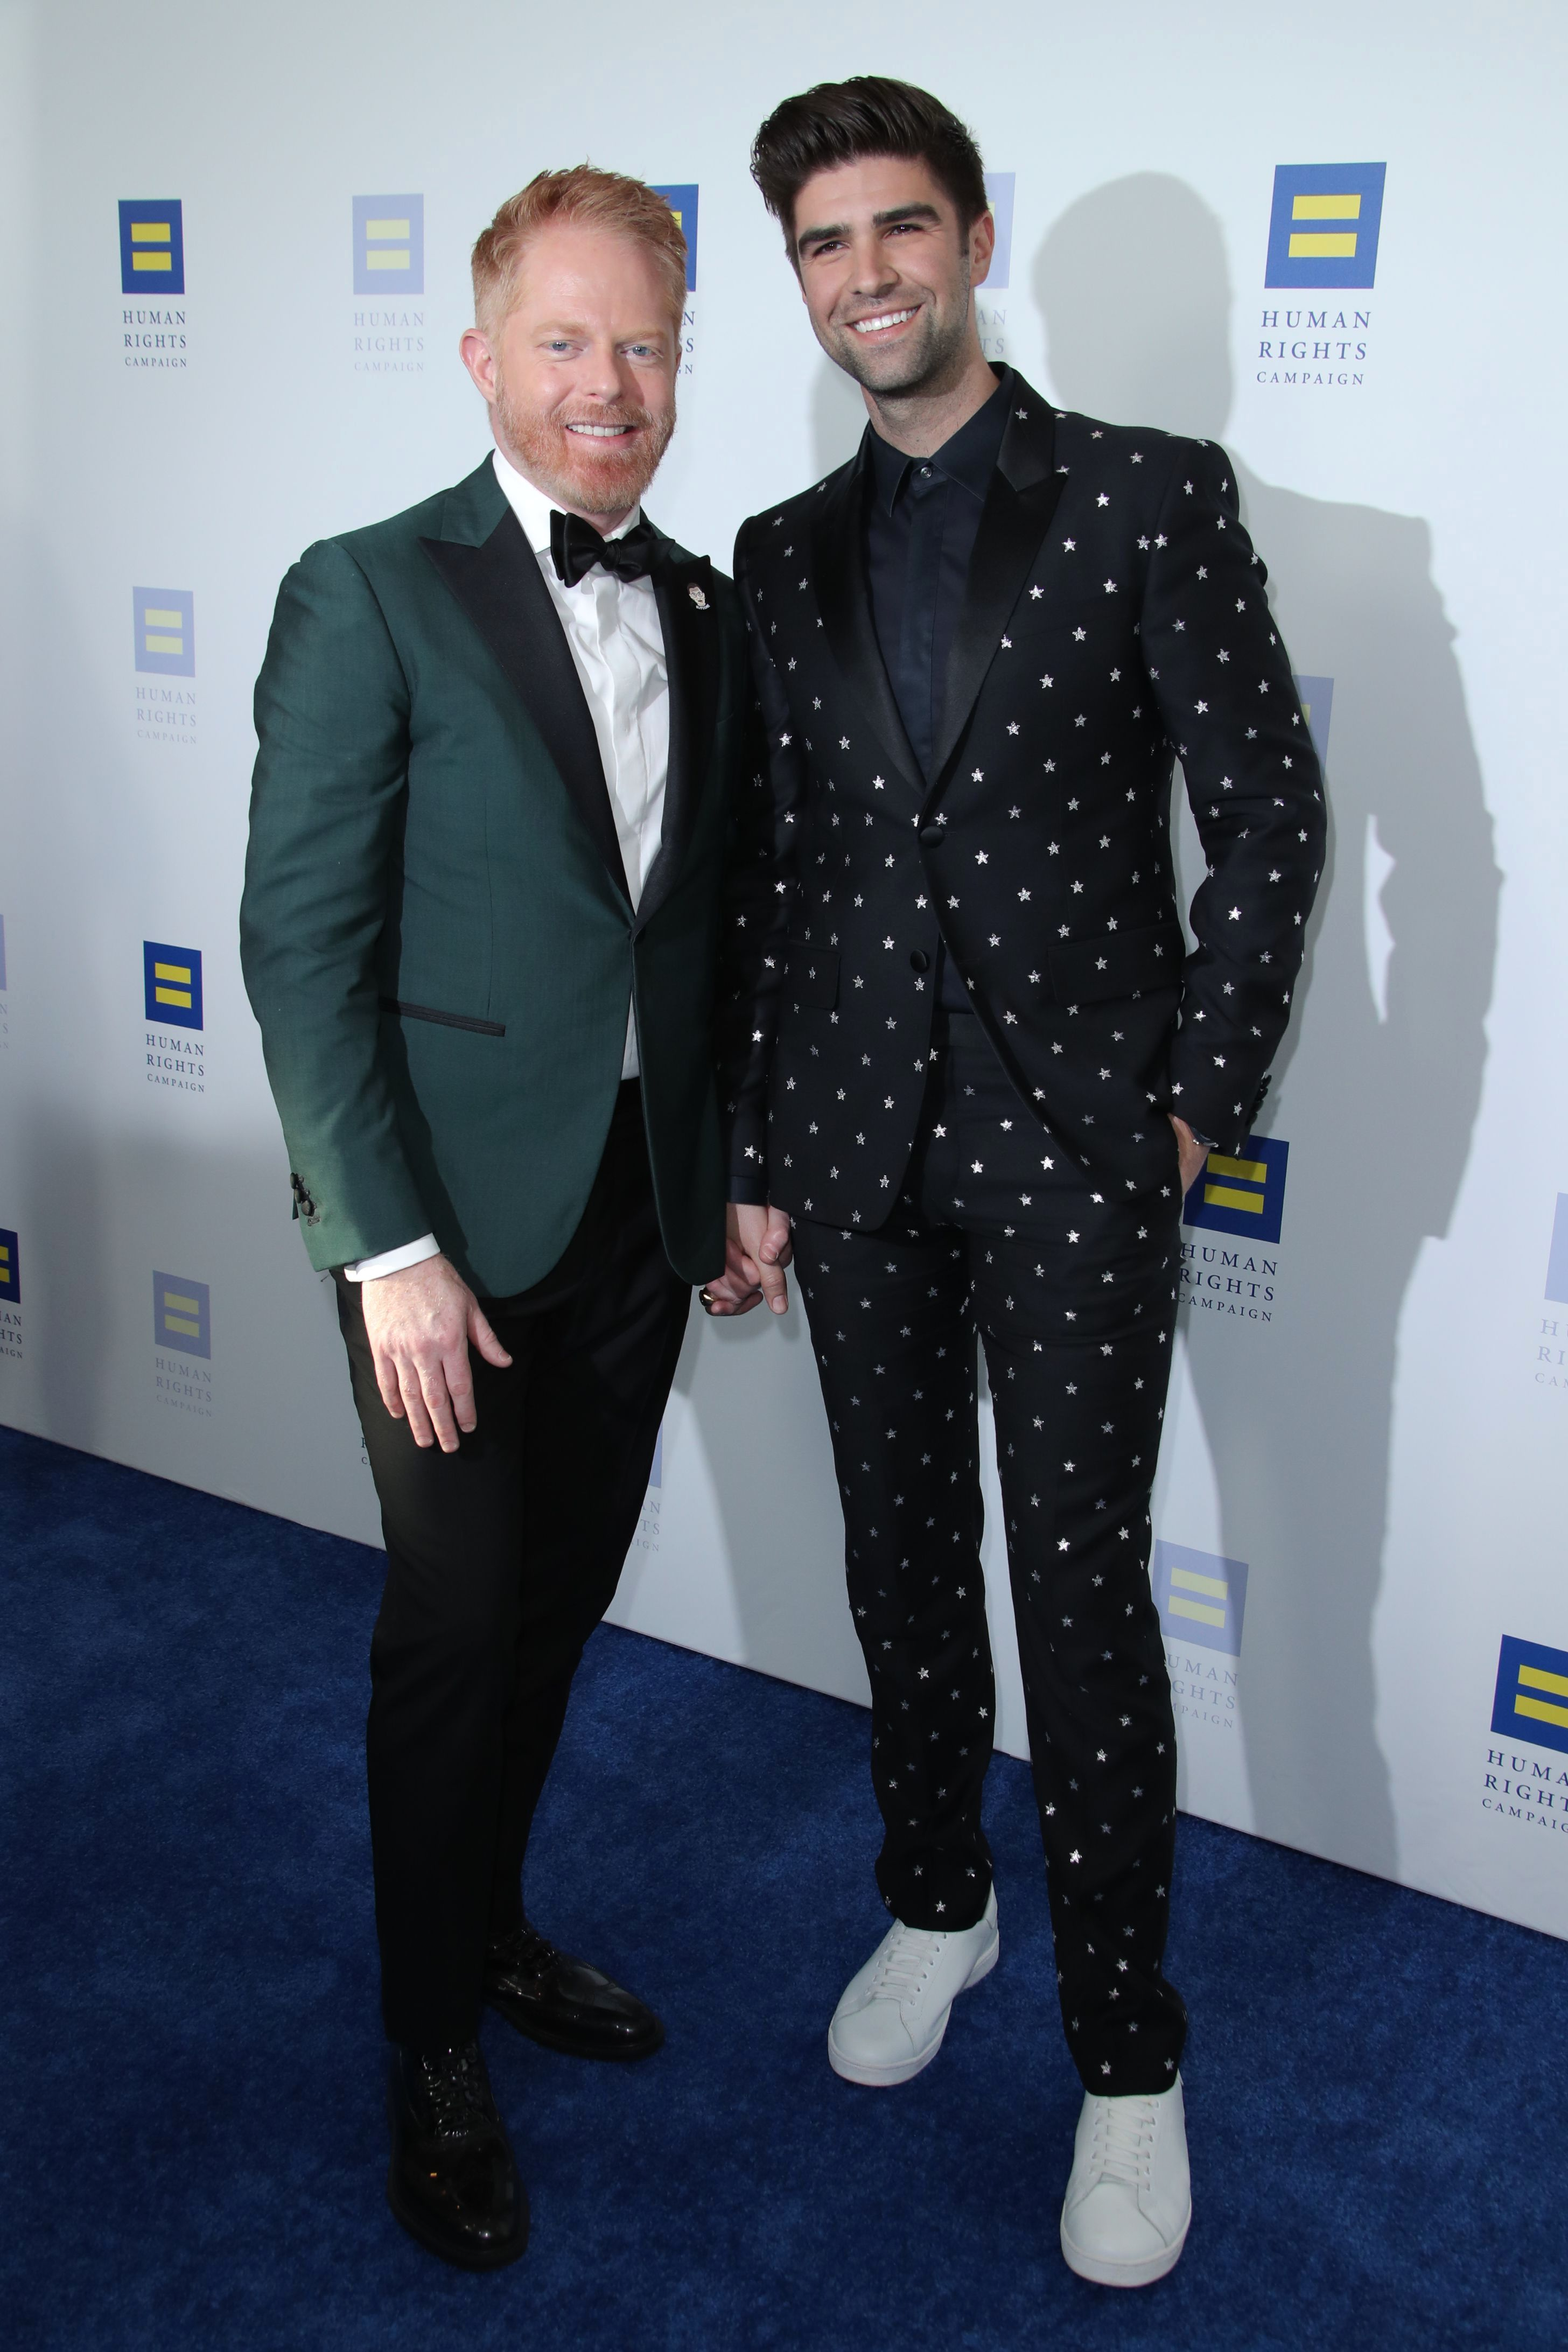 Jesse Tyler Ferguson and husband Justin Mikkita attend the Human Rights Campaign Dinner in Los Angeles on March 30, 2019.